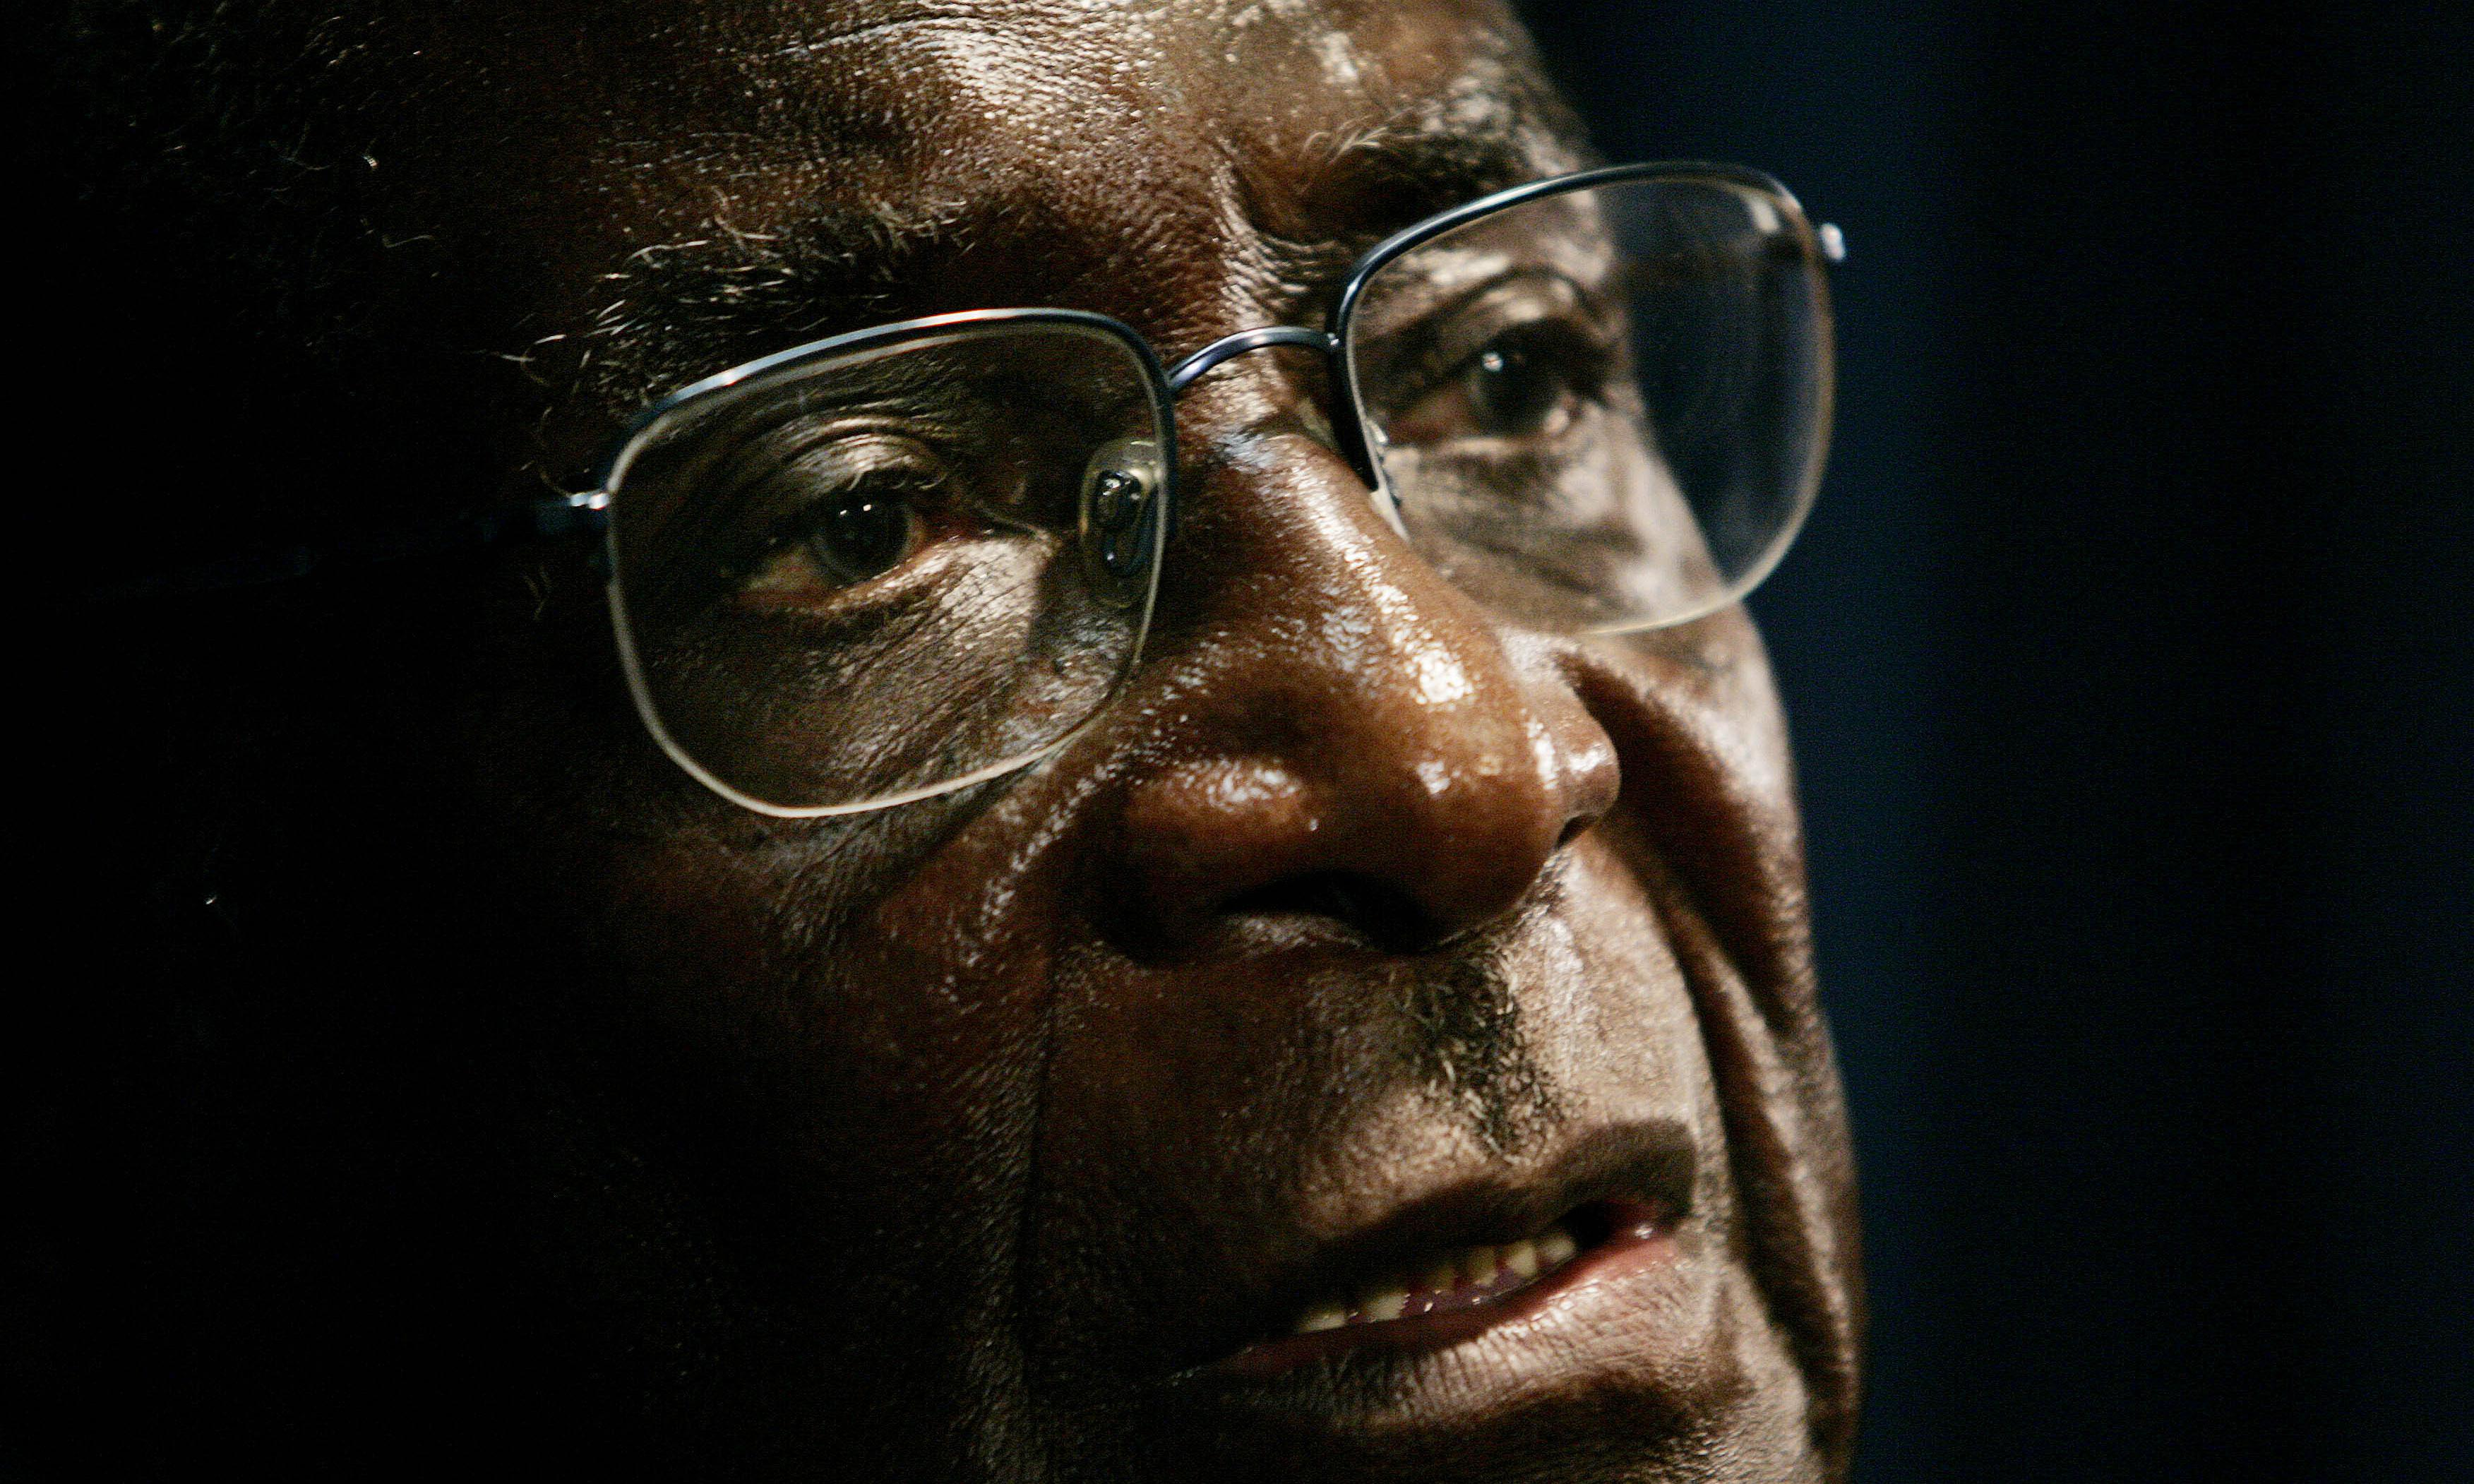 Mugabe's family clashes with Mnangagwa over plans for state funeral